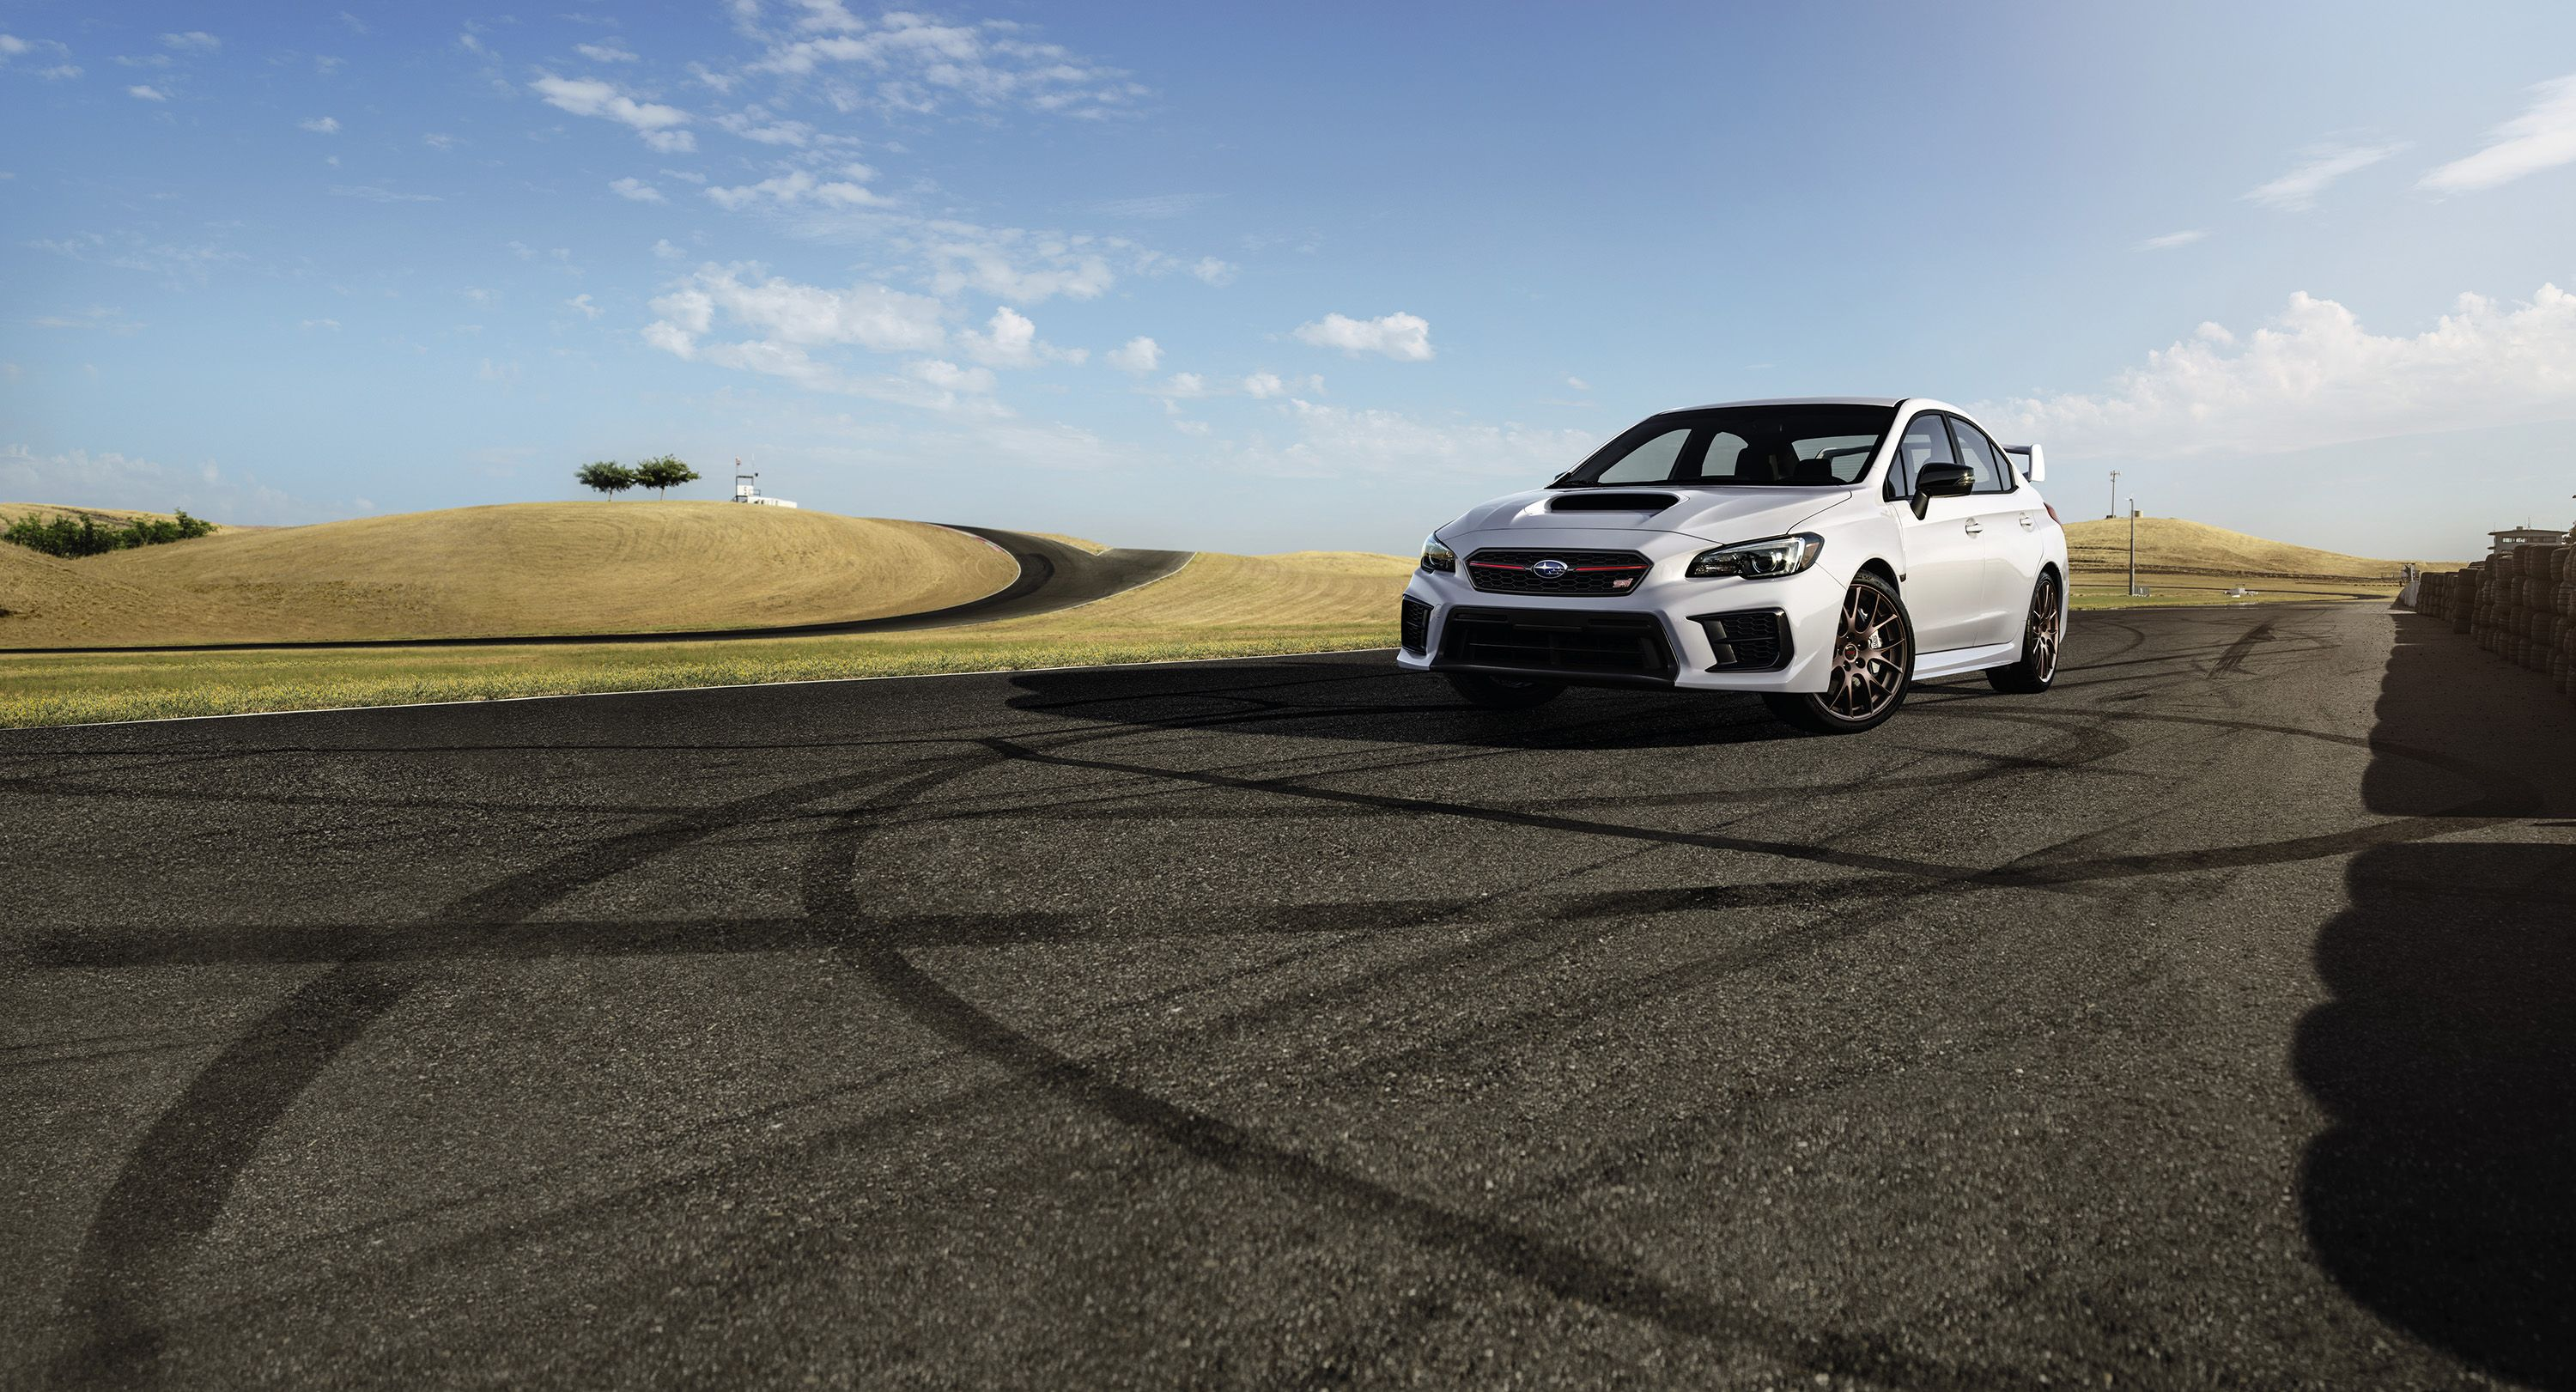 The 2020 Subaru WRX STI Series.White Gets a Retuned Suspension and Ultra-Sticky Tires